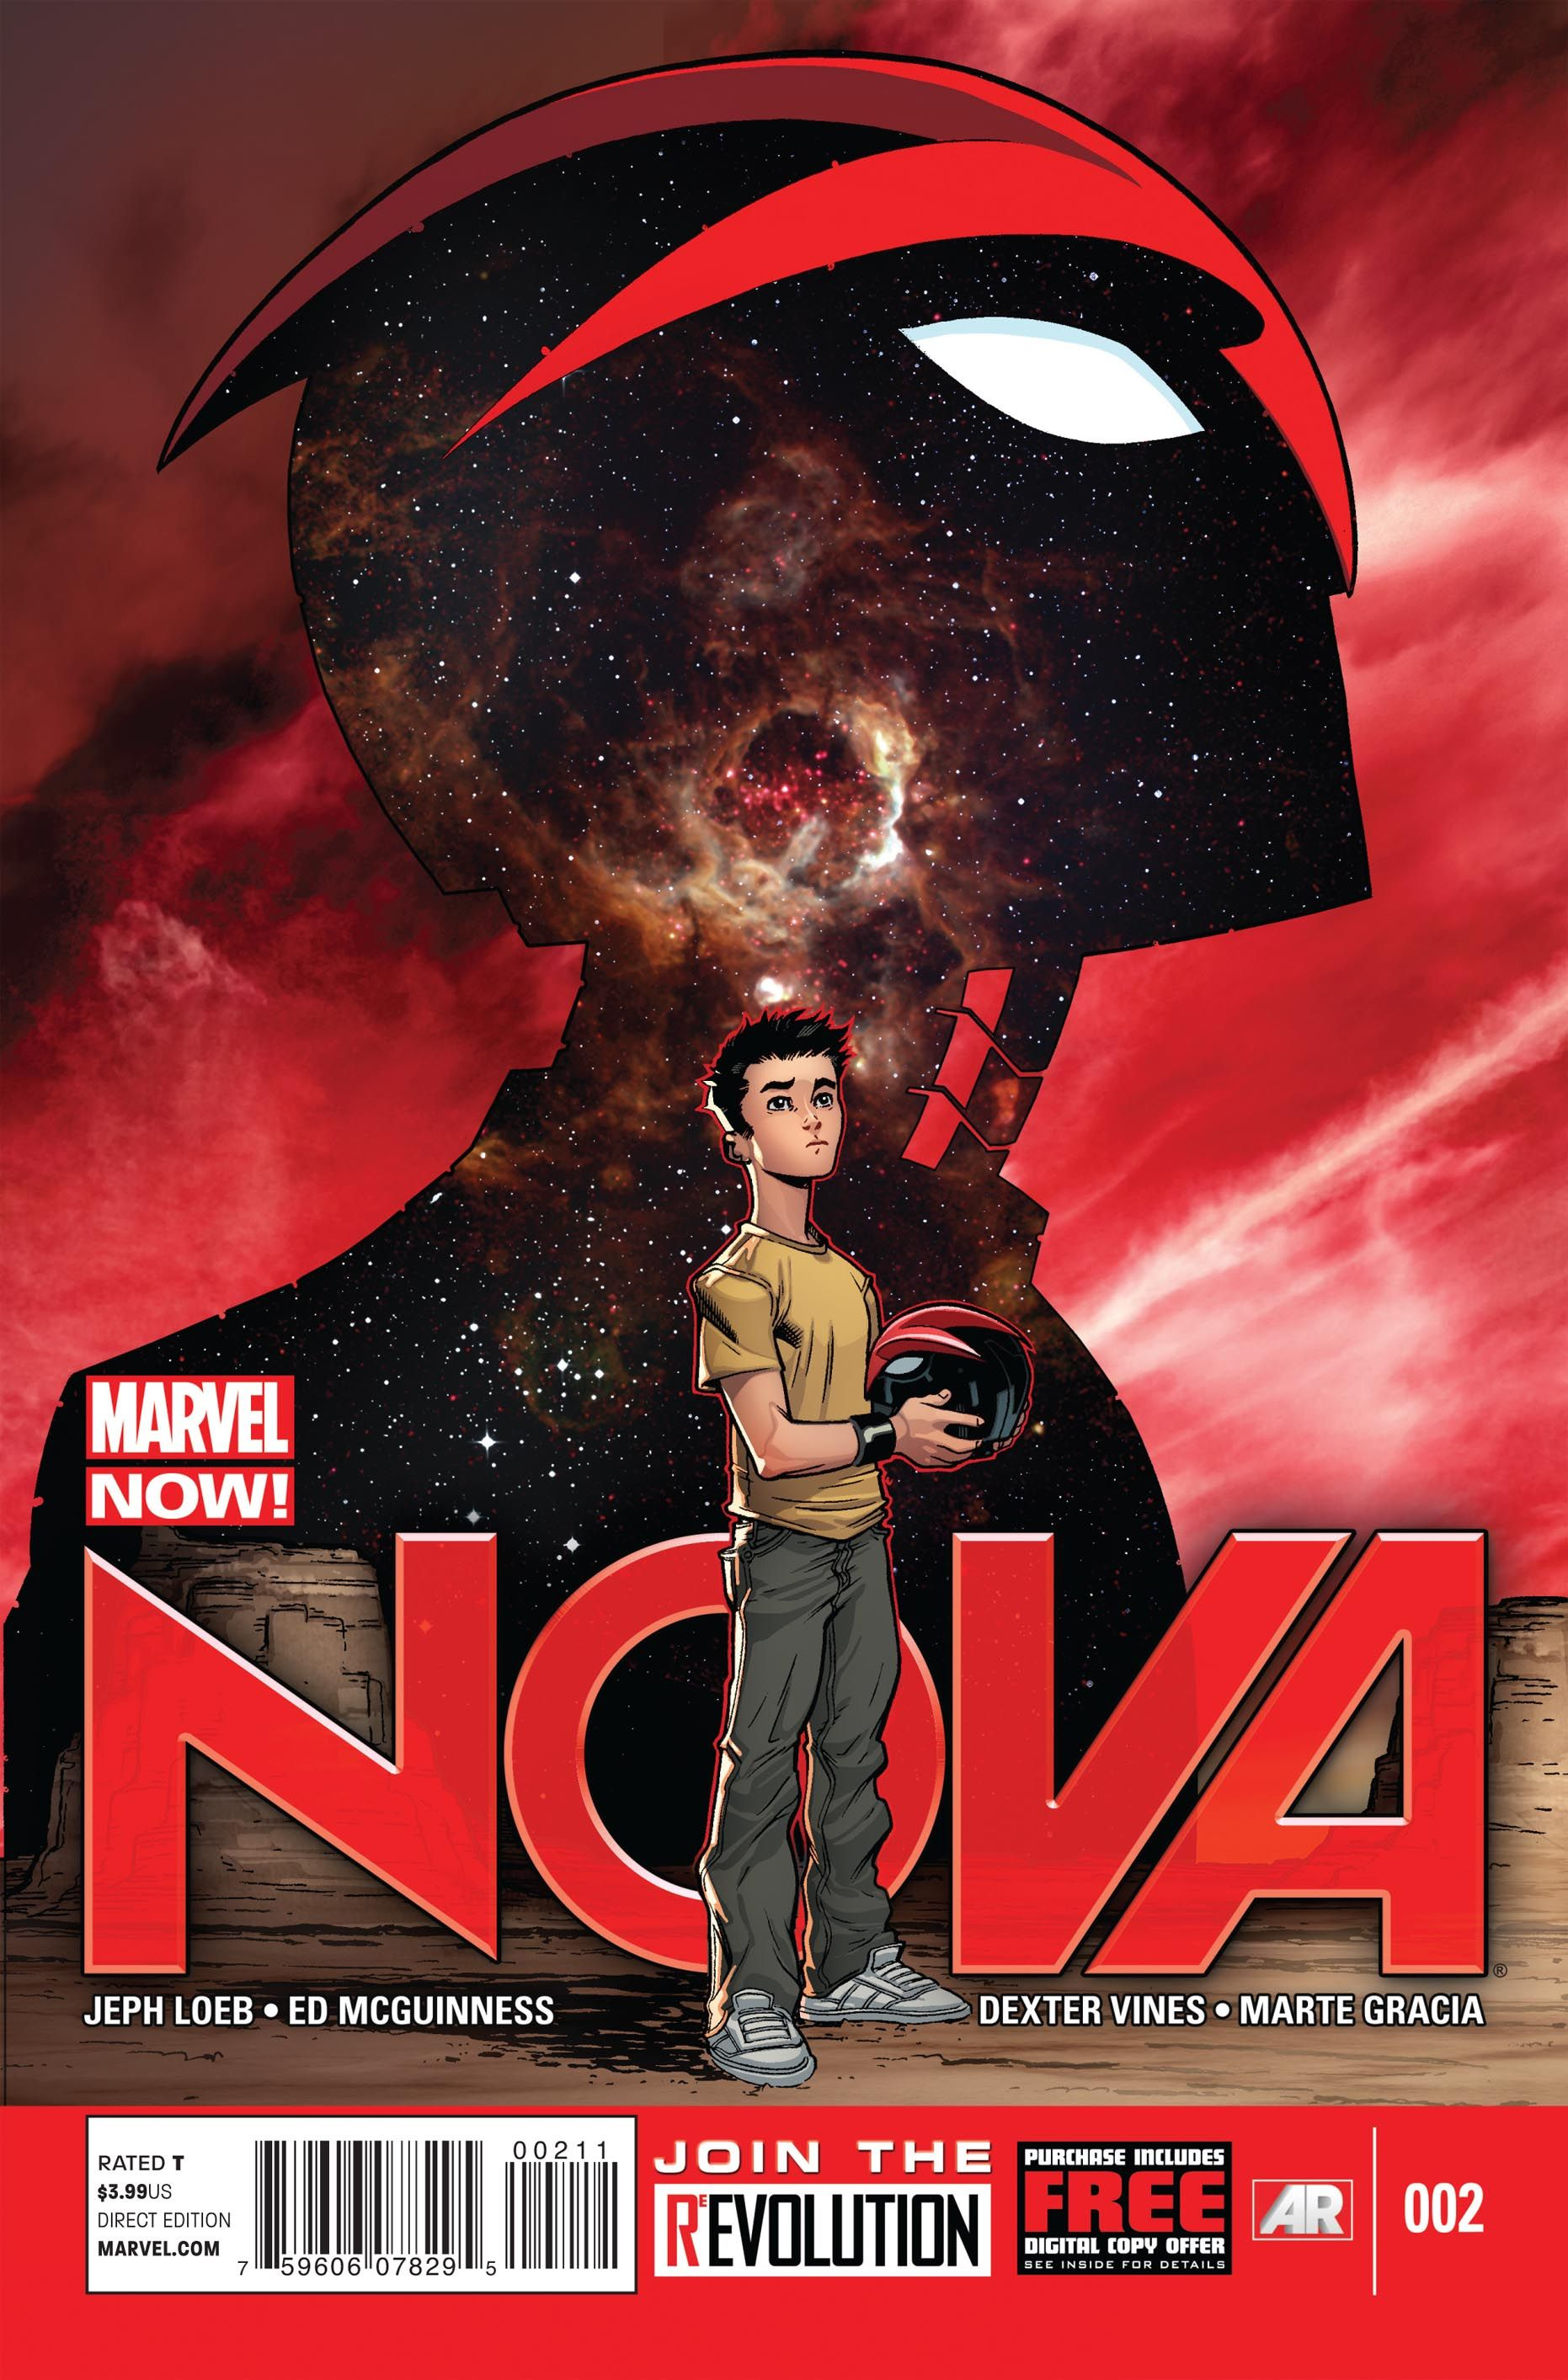 Nova - Marvel Comics don't know what this is but its cool